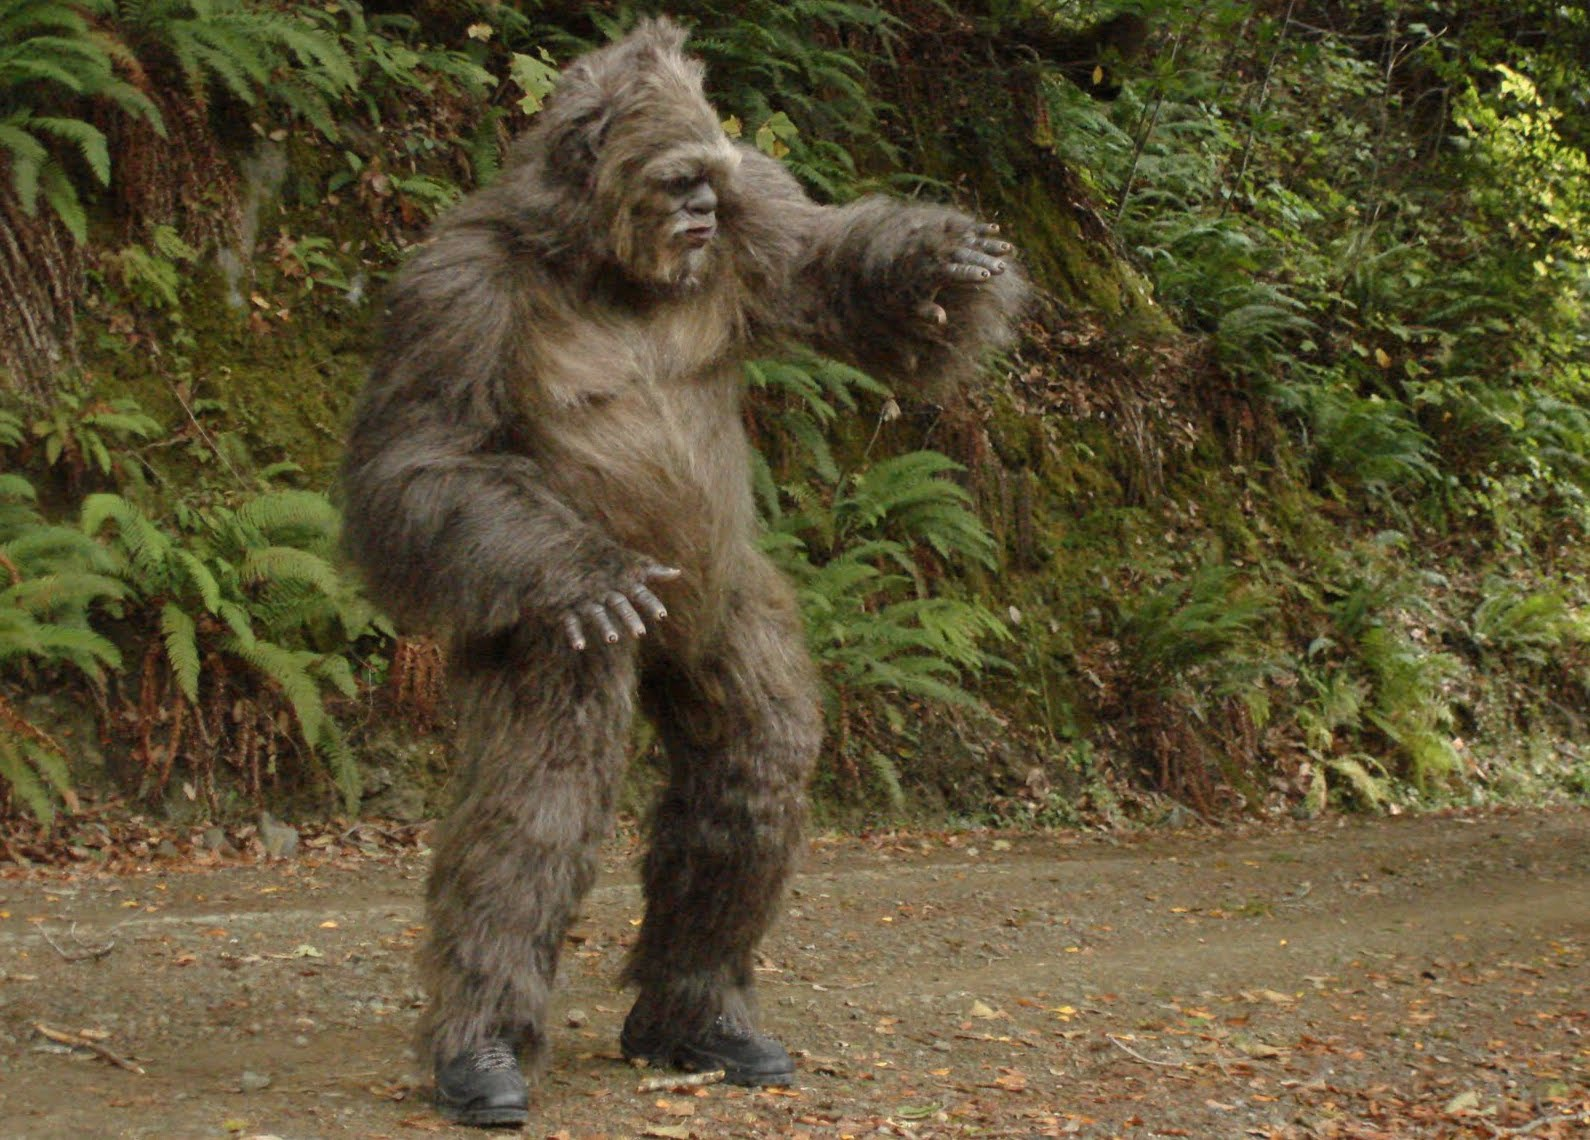 Scientists claim theyve used dna tests to prove bigfoot doesnt scientists claim theyve used dna tests to prove bigfoot doesnt exist syfy wire sciox Images